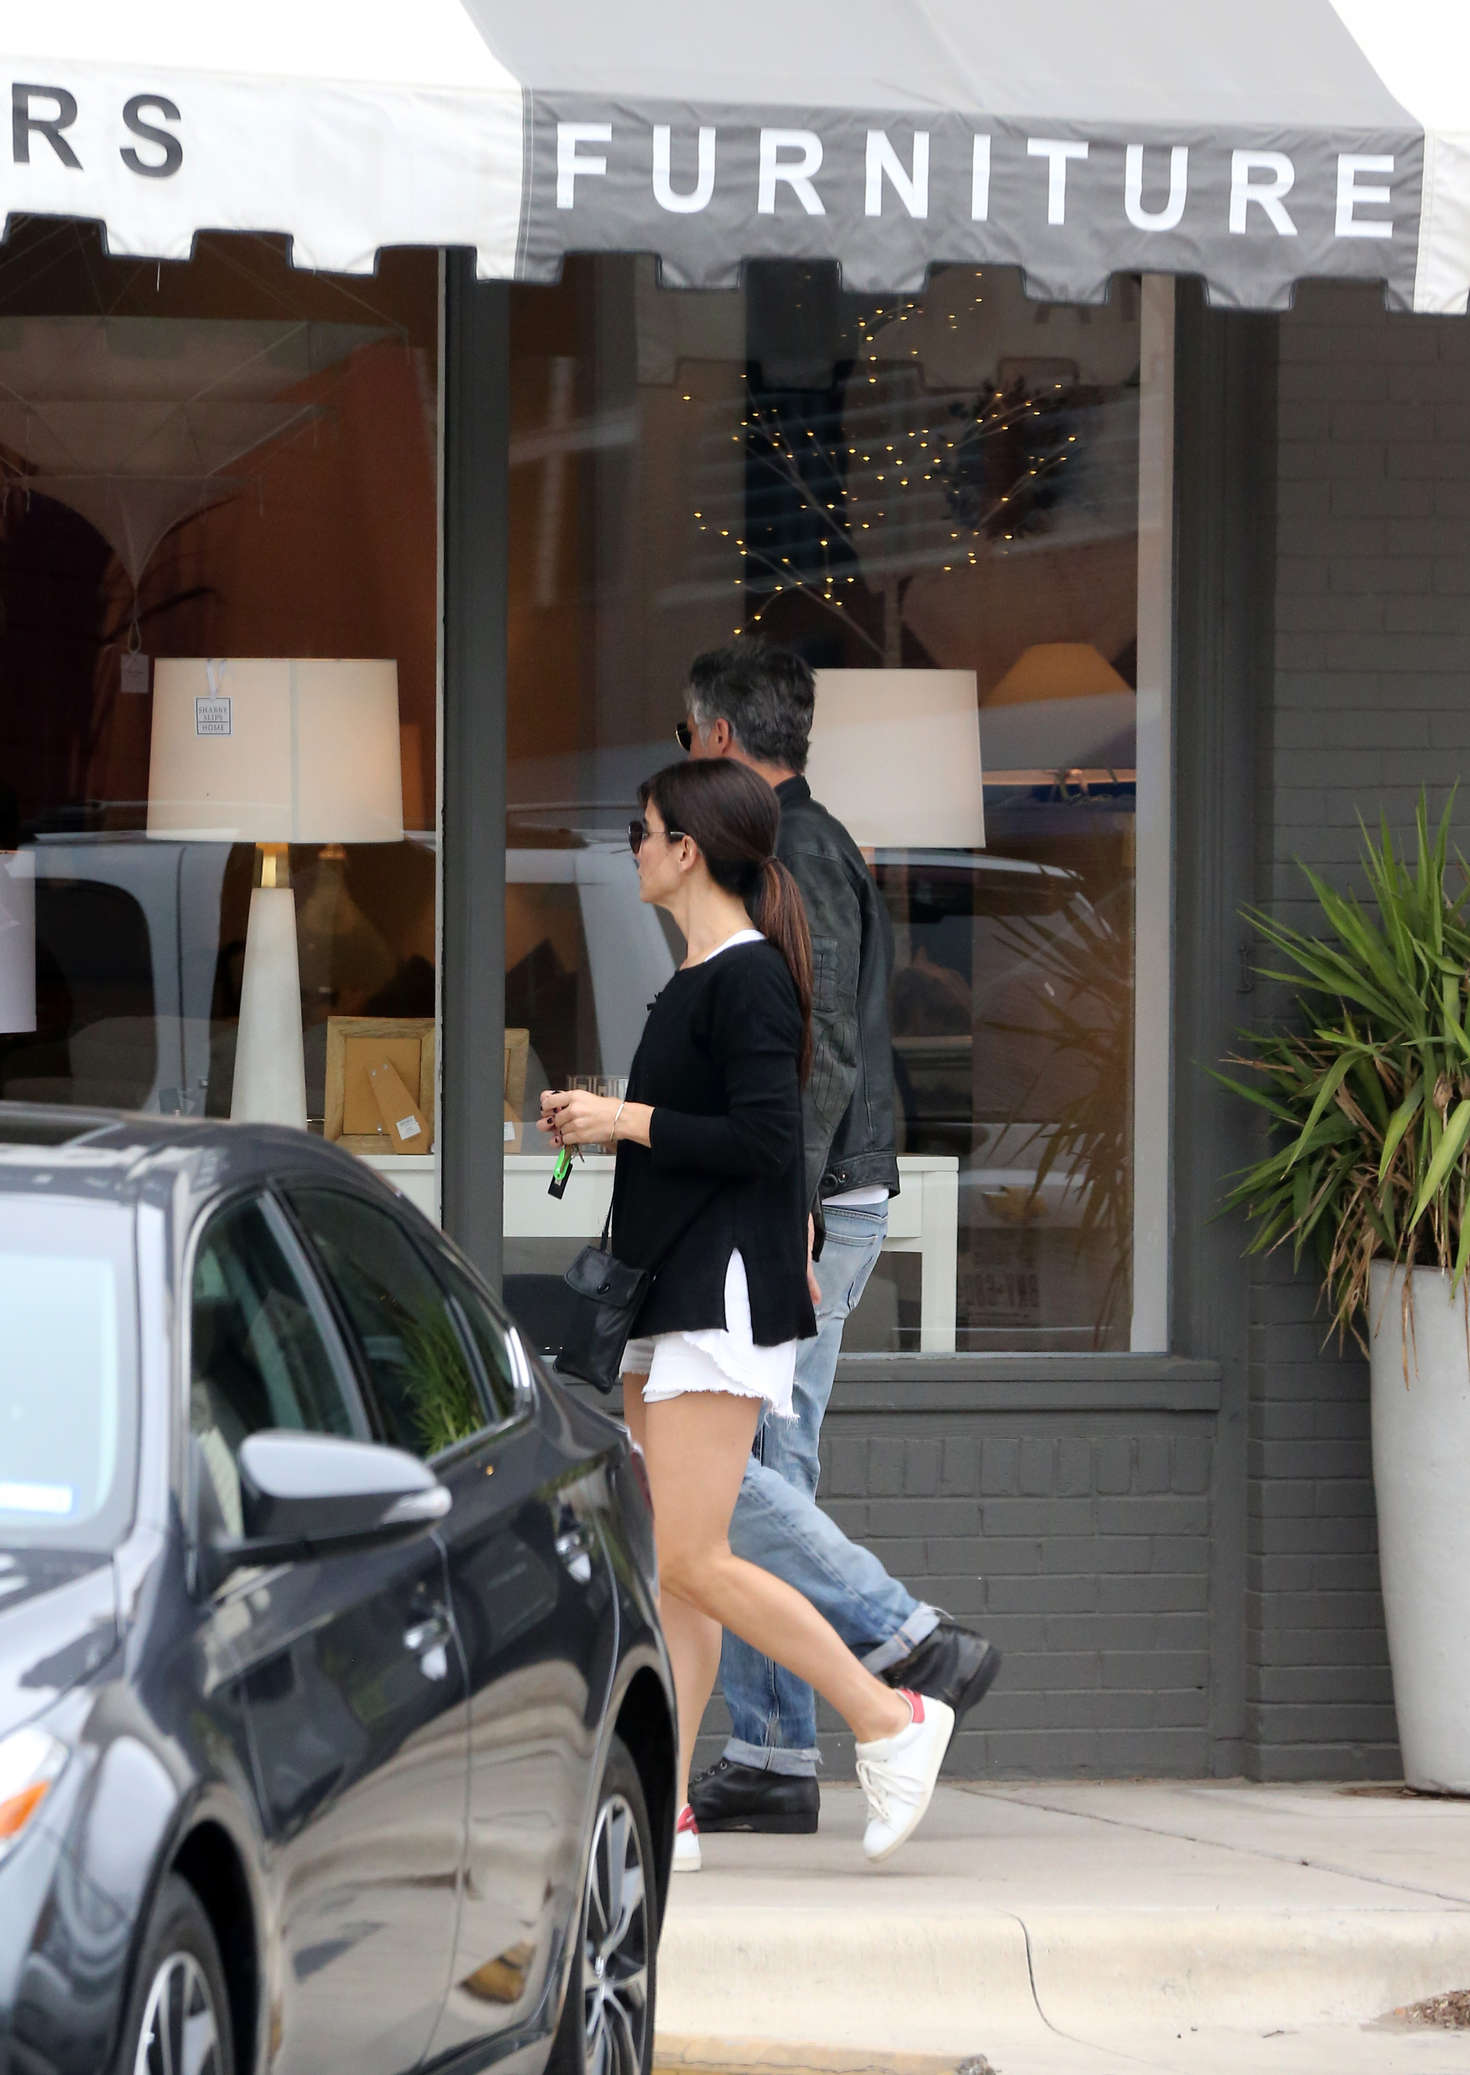 Sandra Bullock and Bryan Randall out in Austin